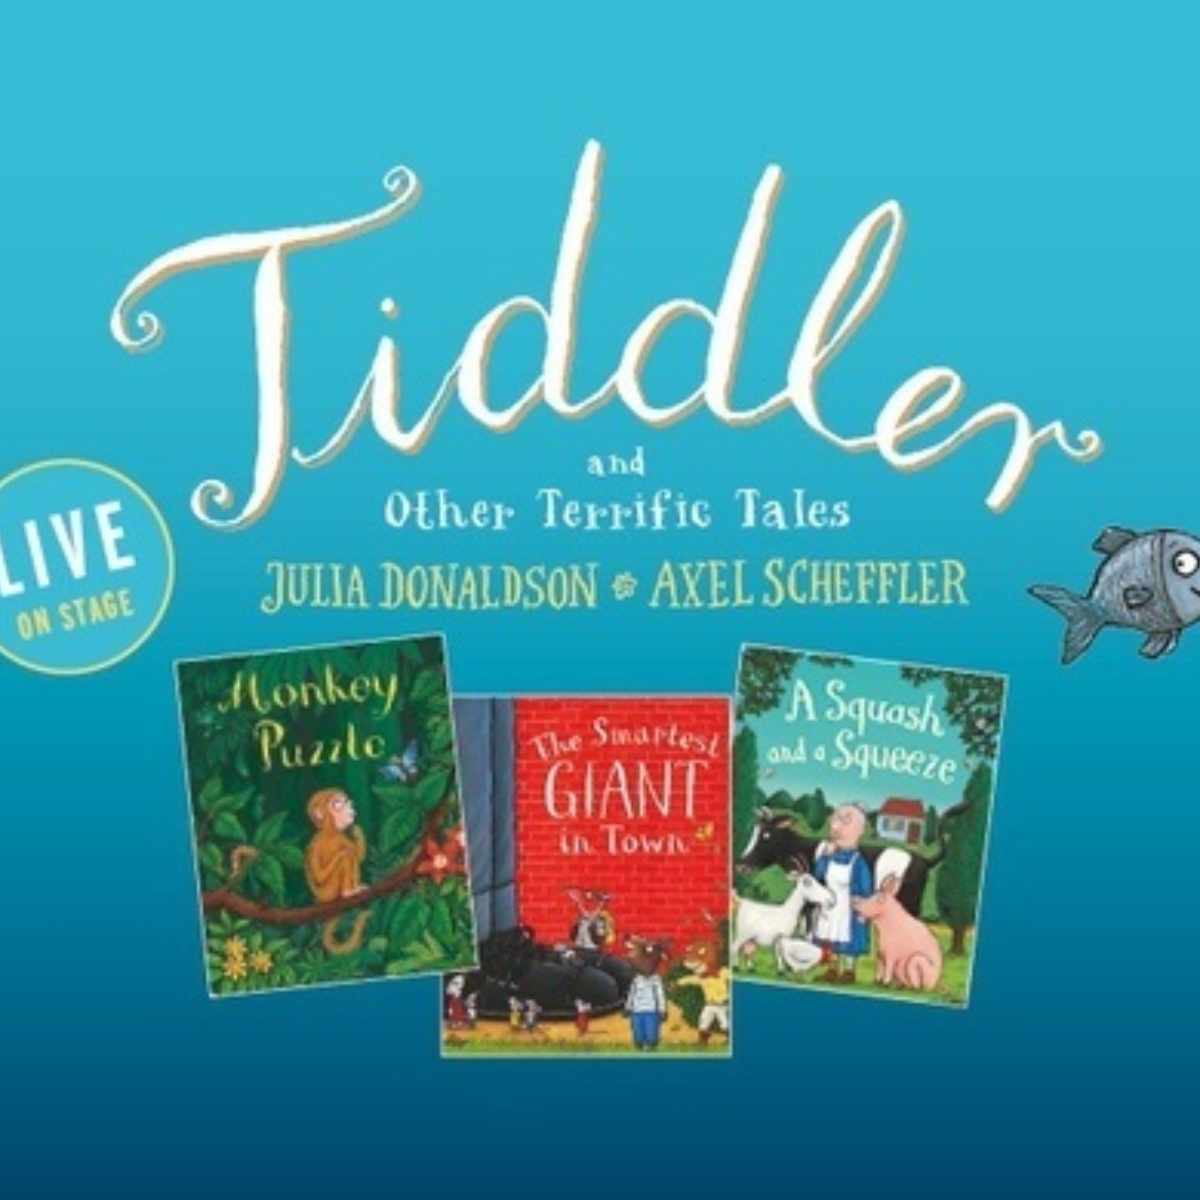 Tiddler and Other Terrific Tales Images